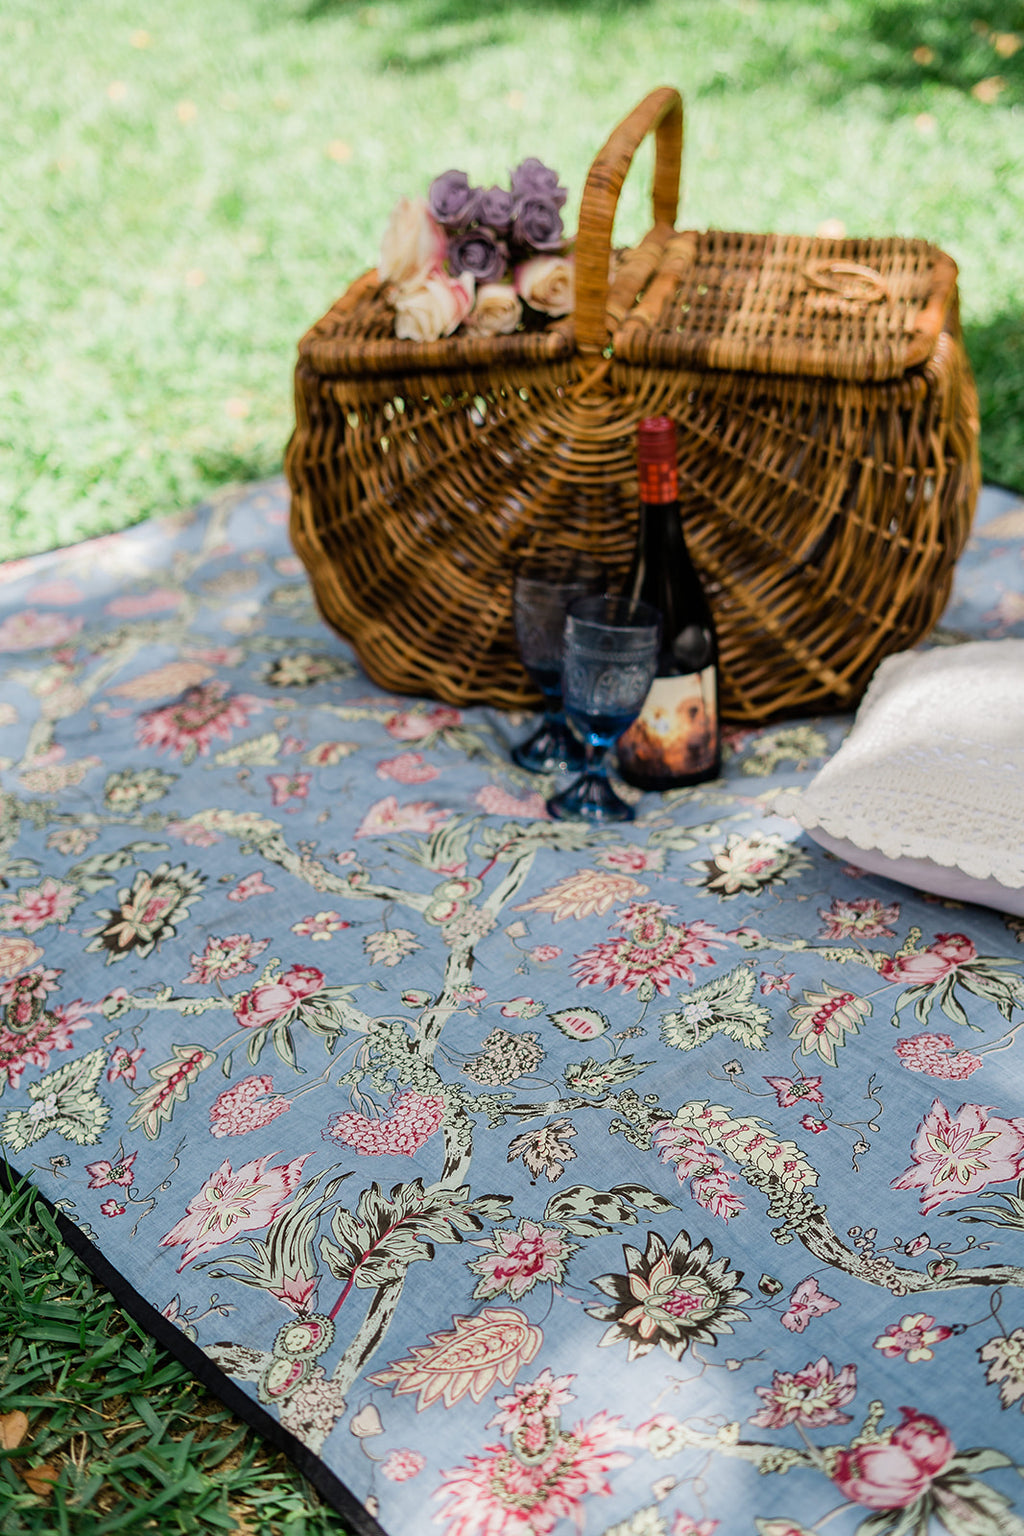 Garden Daisy Picnic Blanket – Silver Cloud SOLD OUT